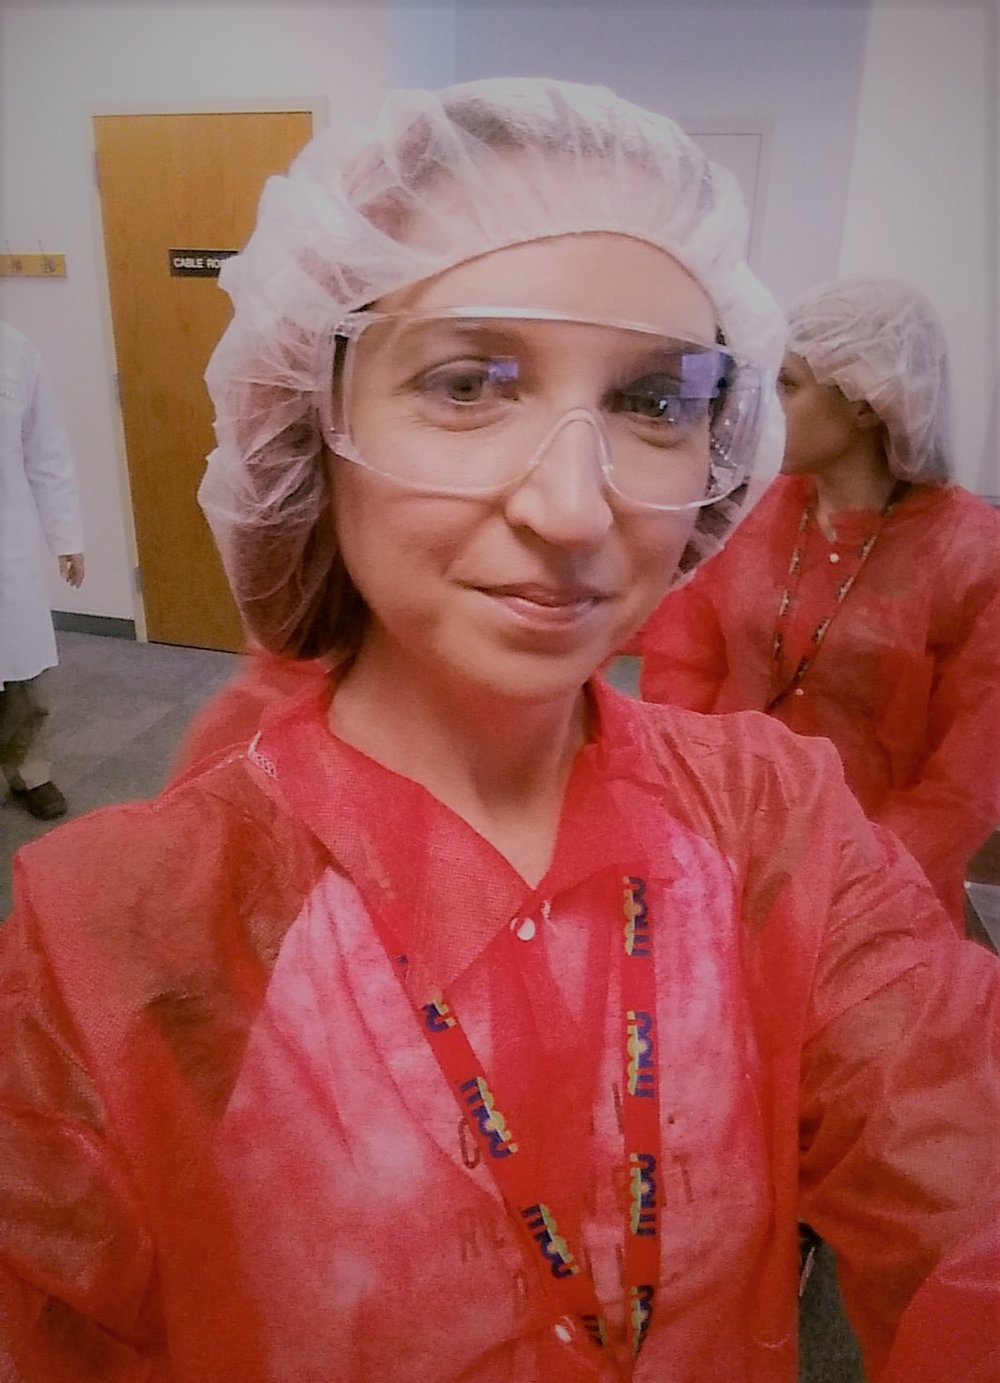 Rockin the goggles and hairnet at the NOW Foods plant!